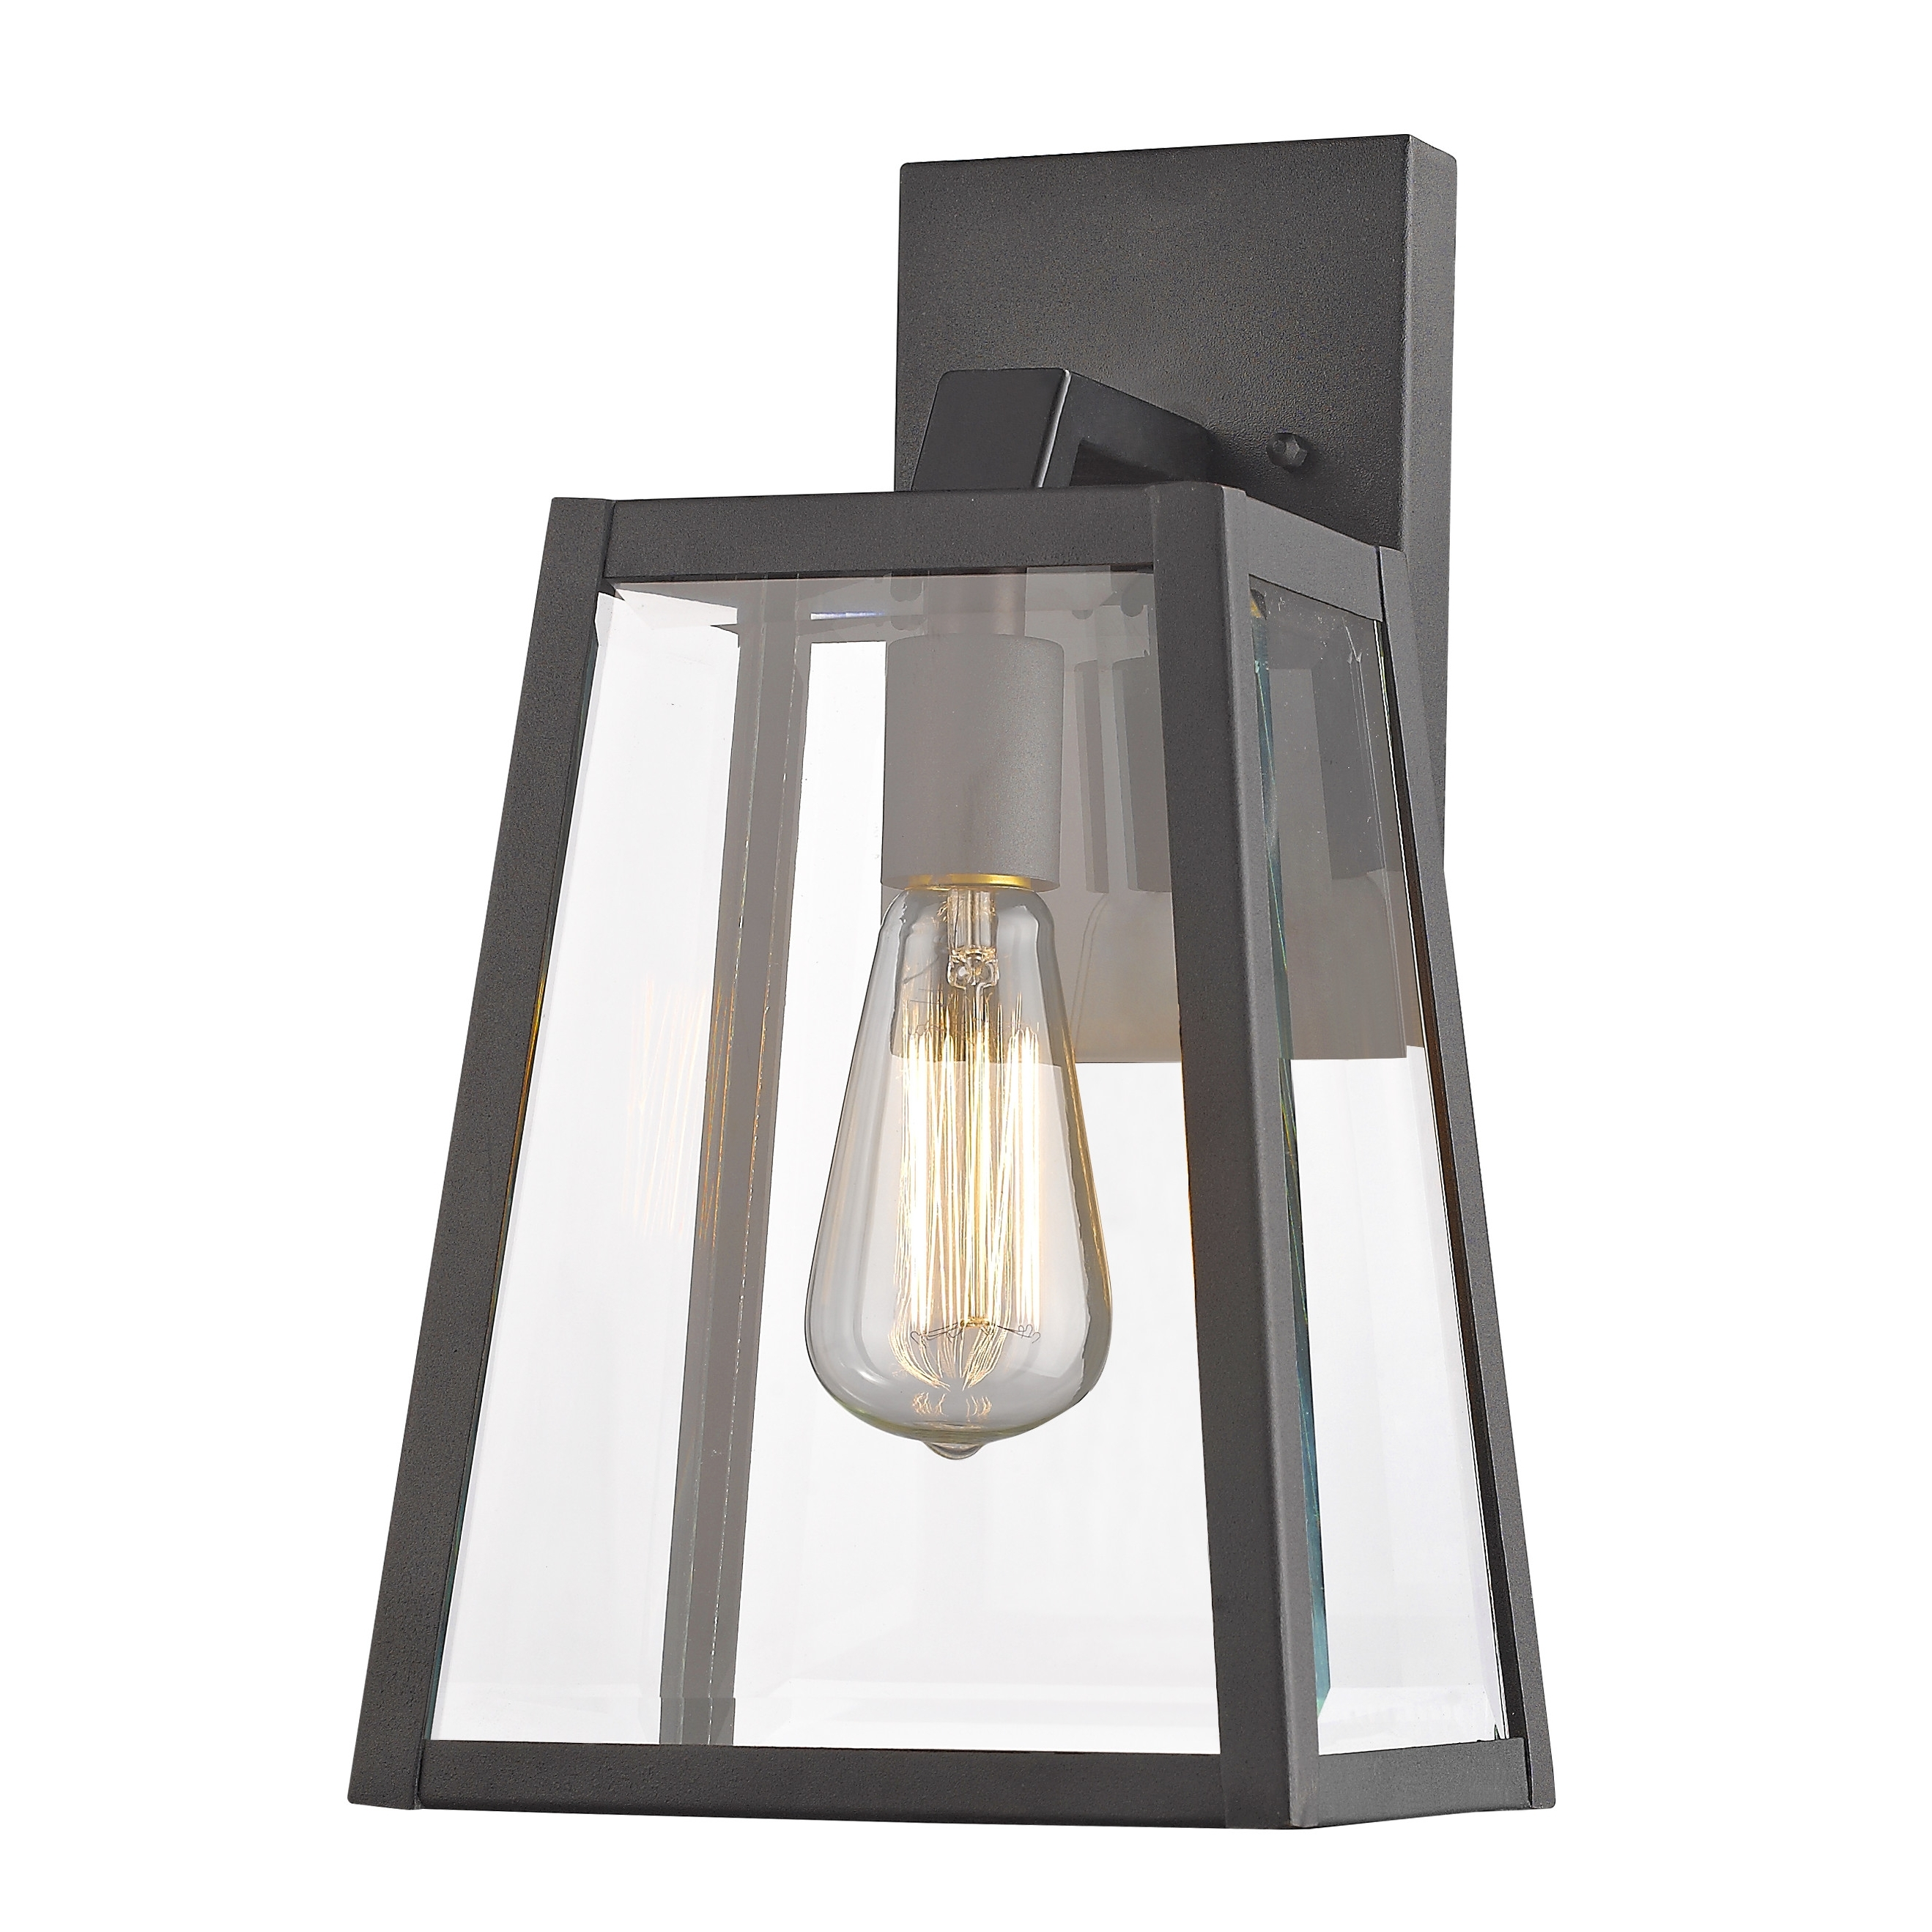 Most Recent Outdoor Lighting Fixtures At Wayfair Throughout Light : Barn Brown Wall Mounted Home Depot Solar Lights For Outdoor (View 4 of 20)